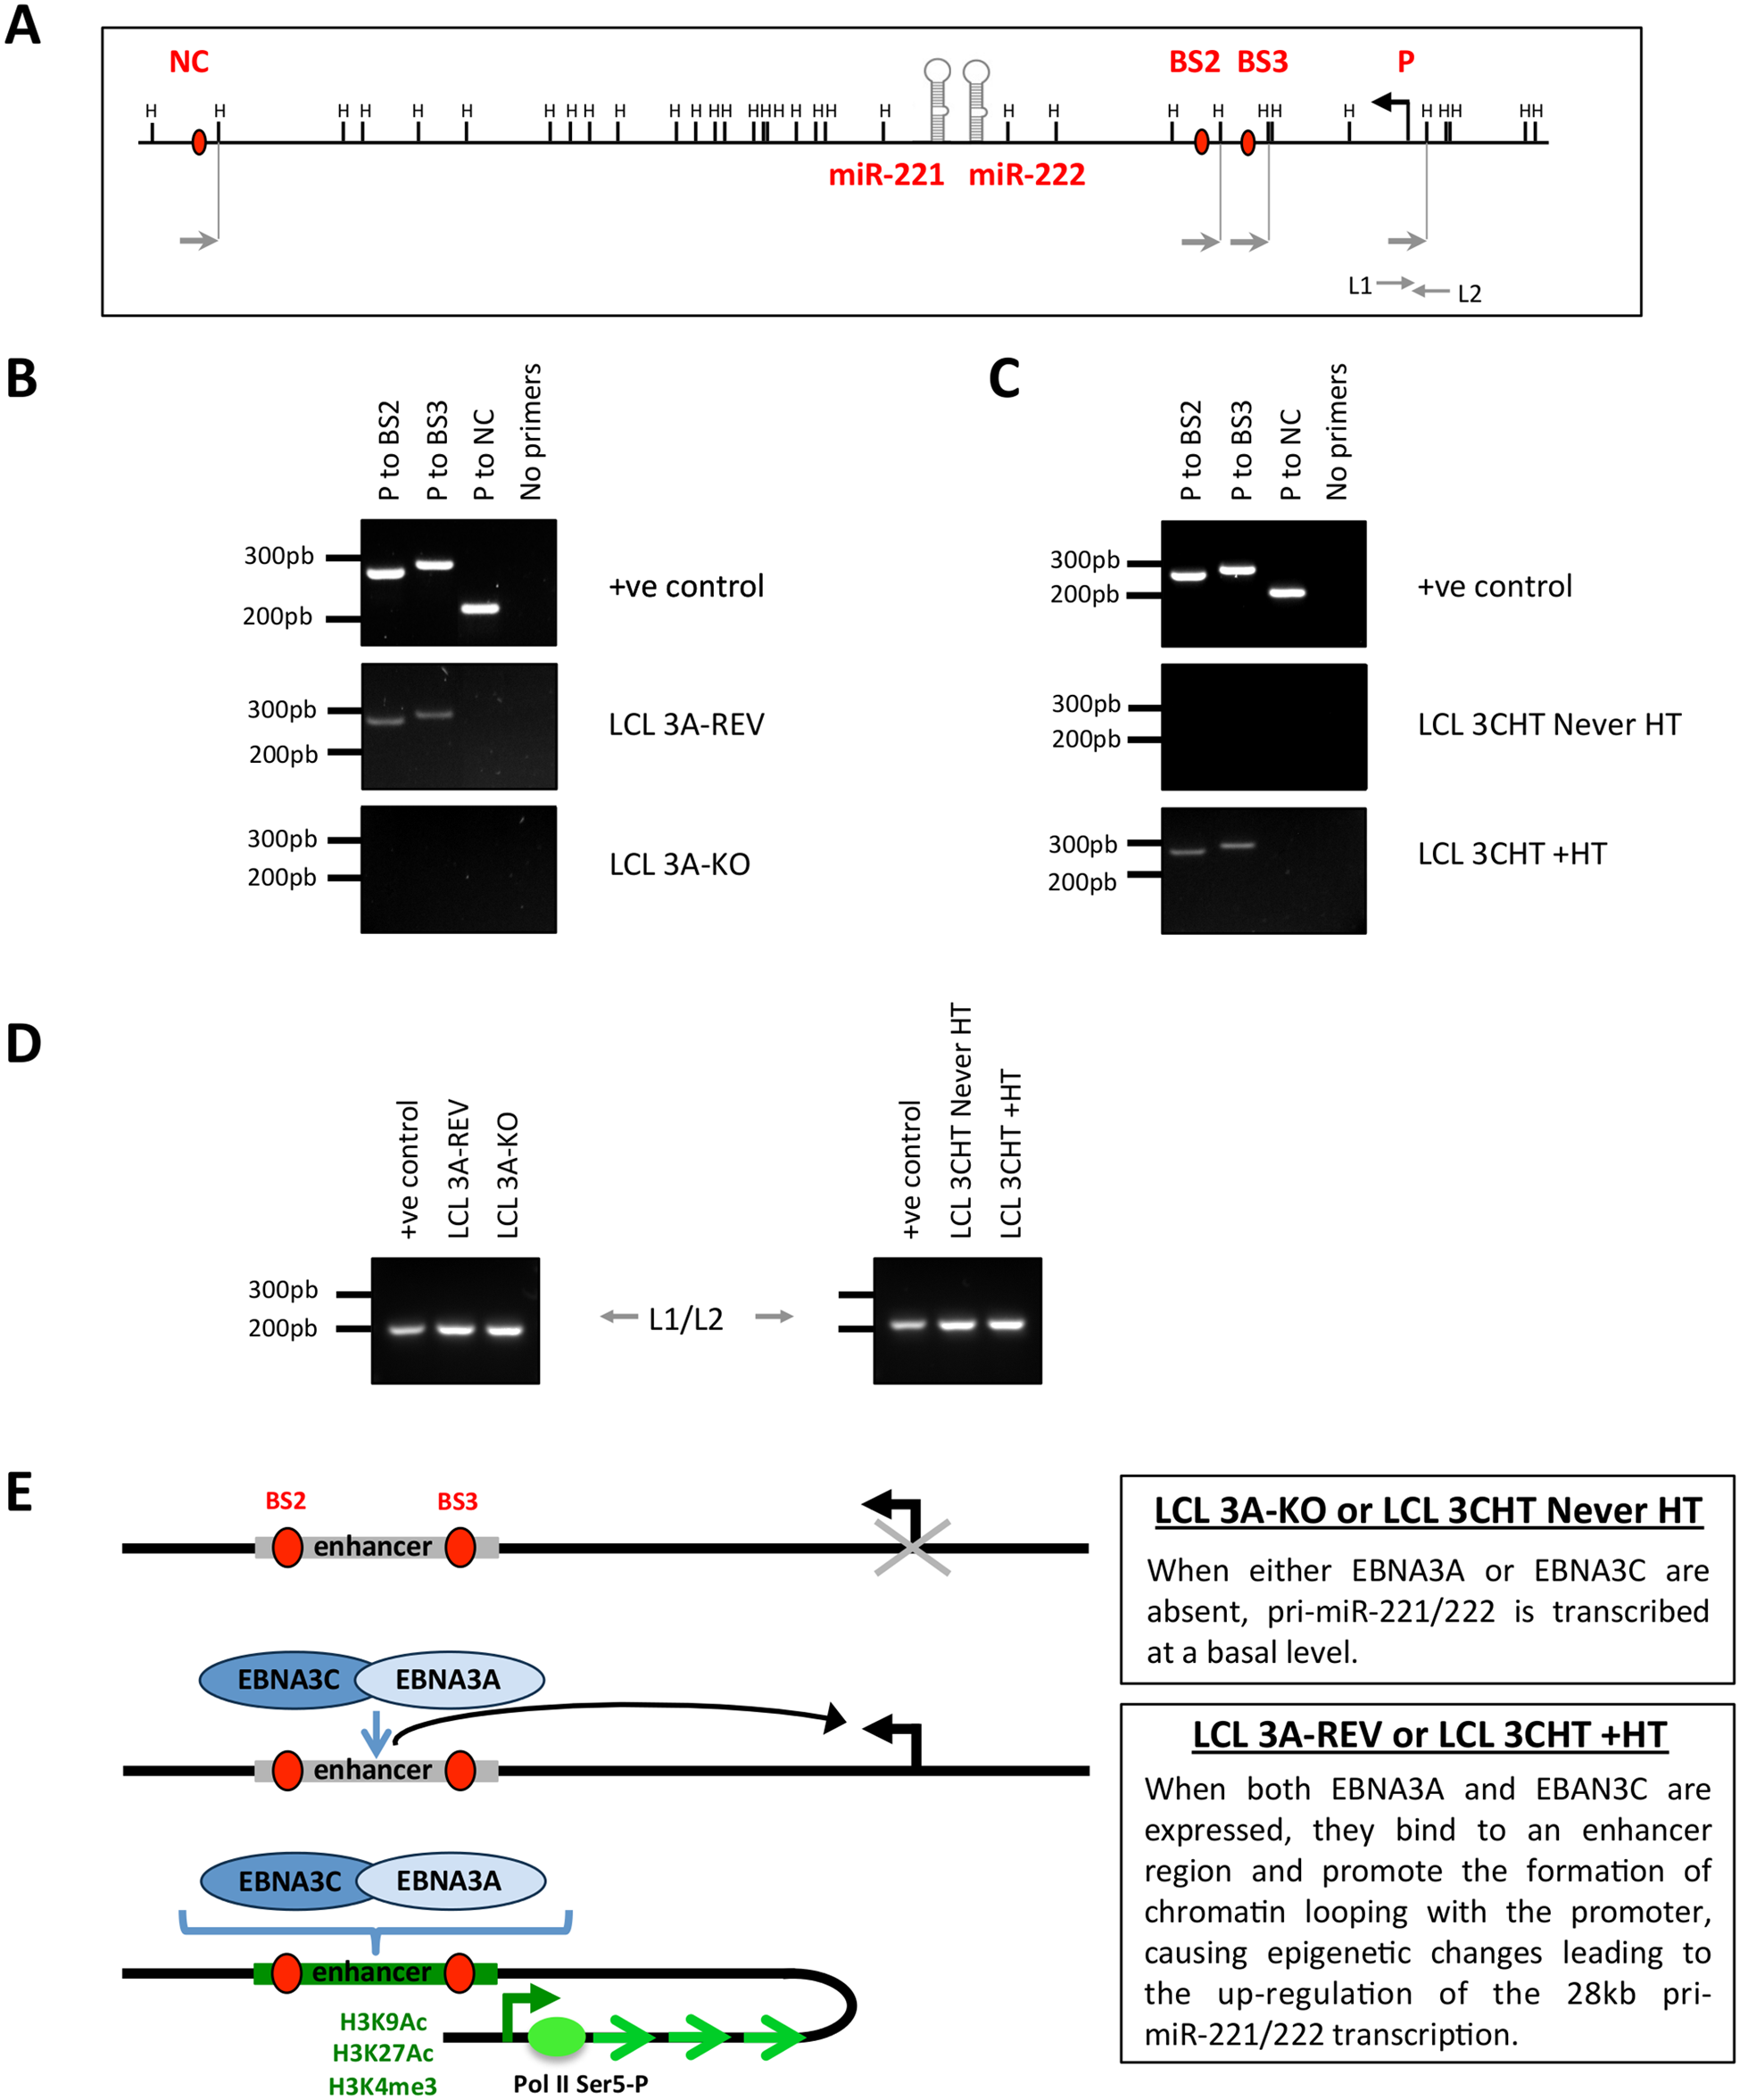 EBNA3A and EBNA3C induce chromosome looping at the miR-221/miR-222 cluster locus.